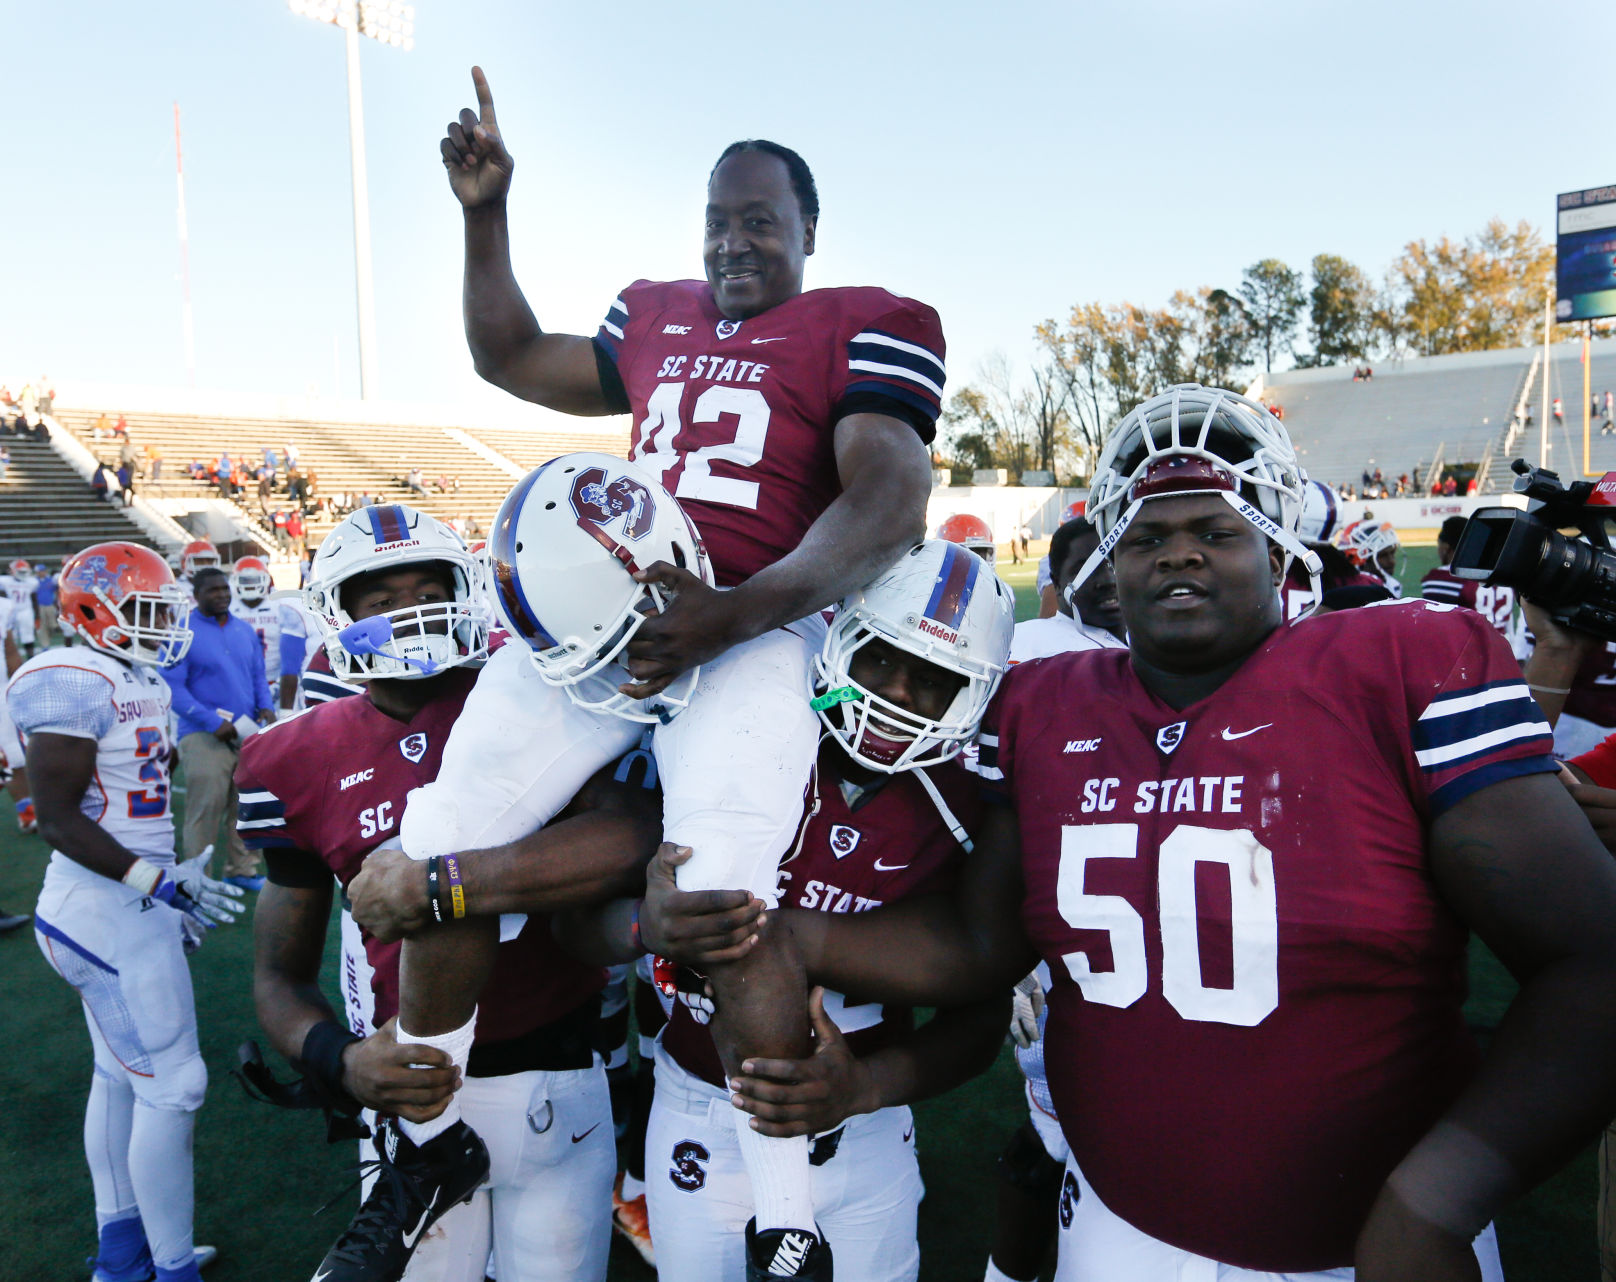 55-year old Joe Thomas carried off the field by his South Carolina State teammates